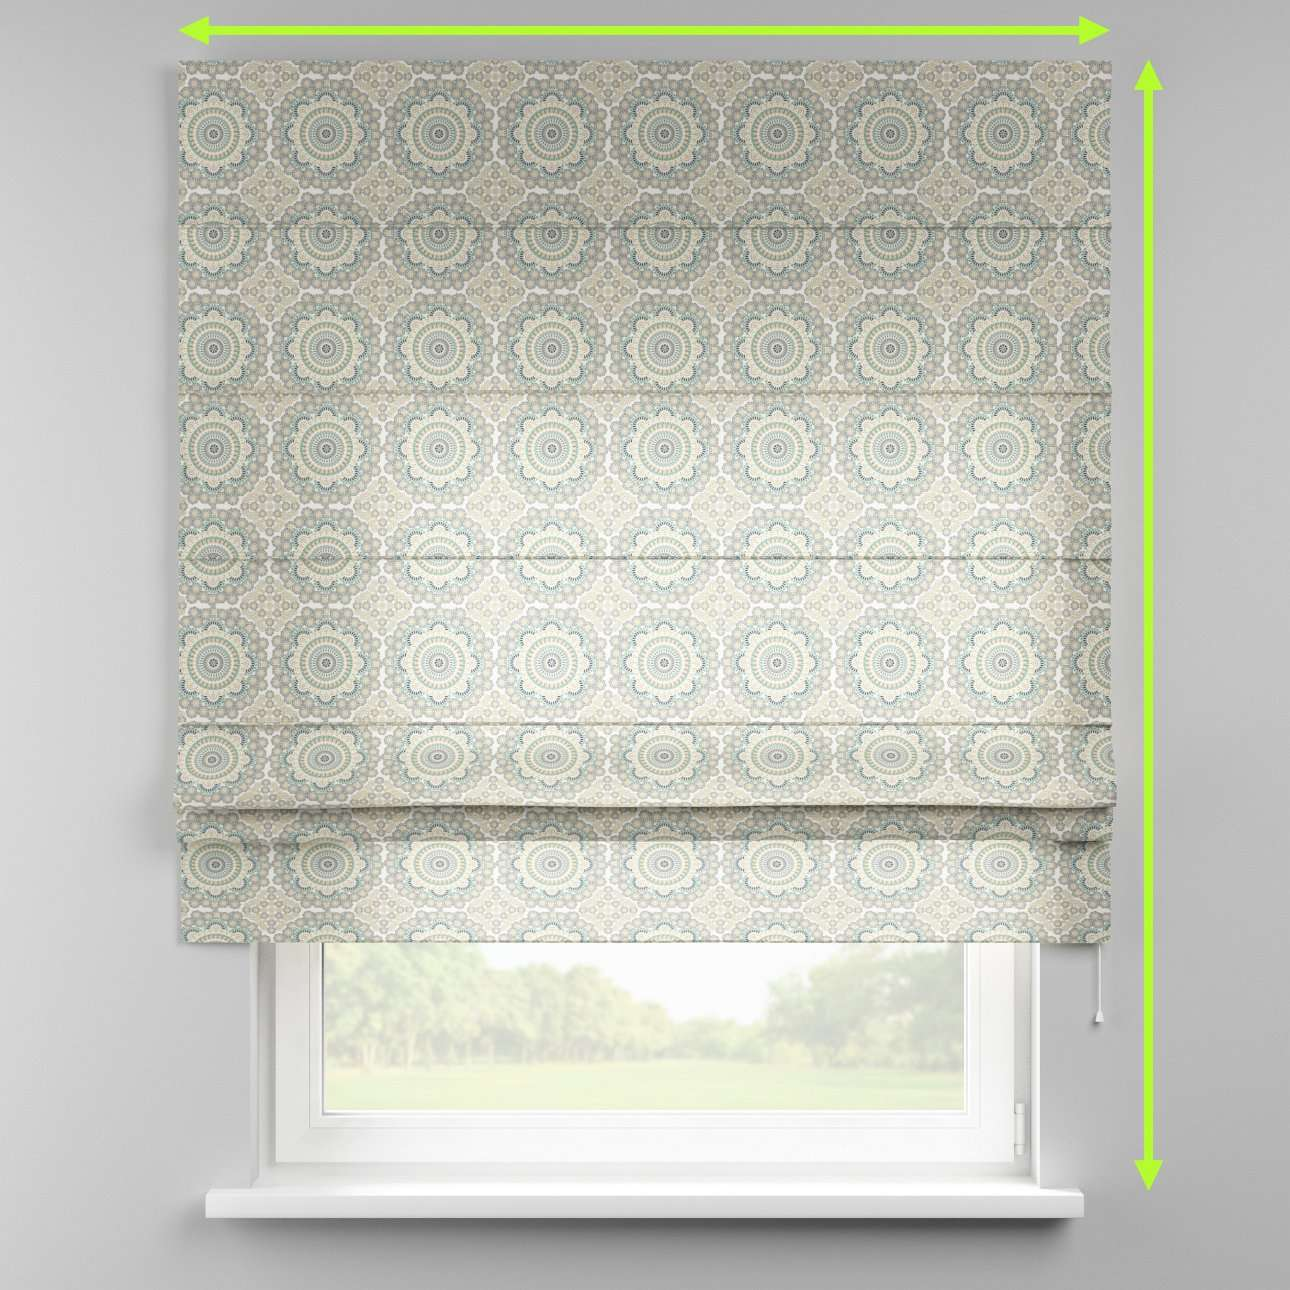 Padva roman blind  in collection Comic Book & Geo Prints, fabric: 137-84